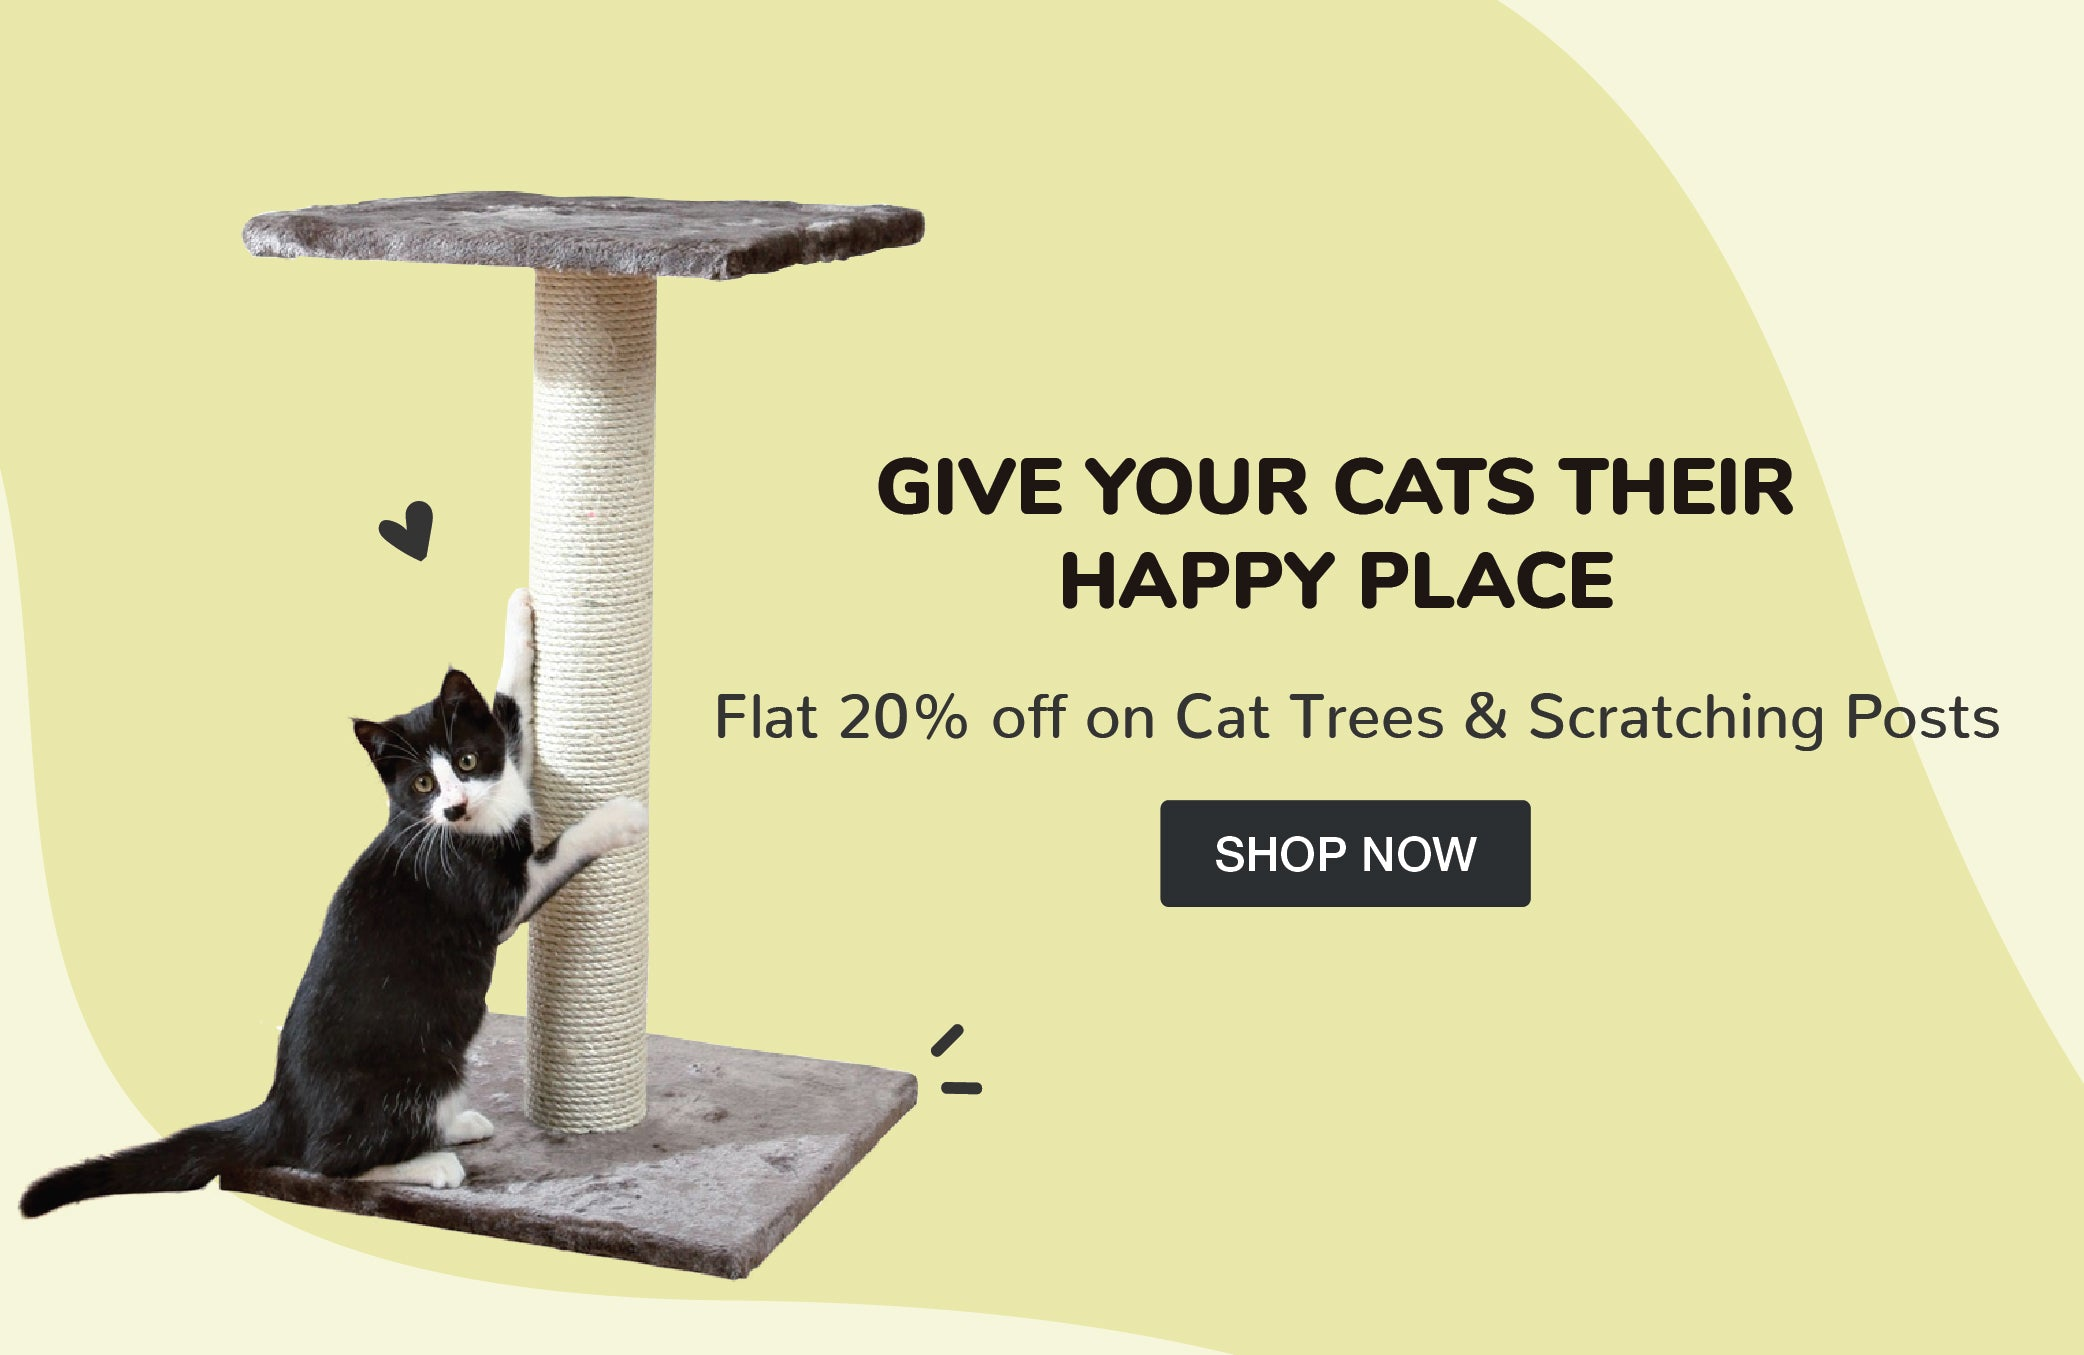 Cat Scratchers & Trees